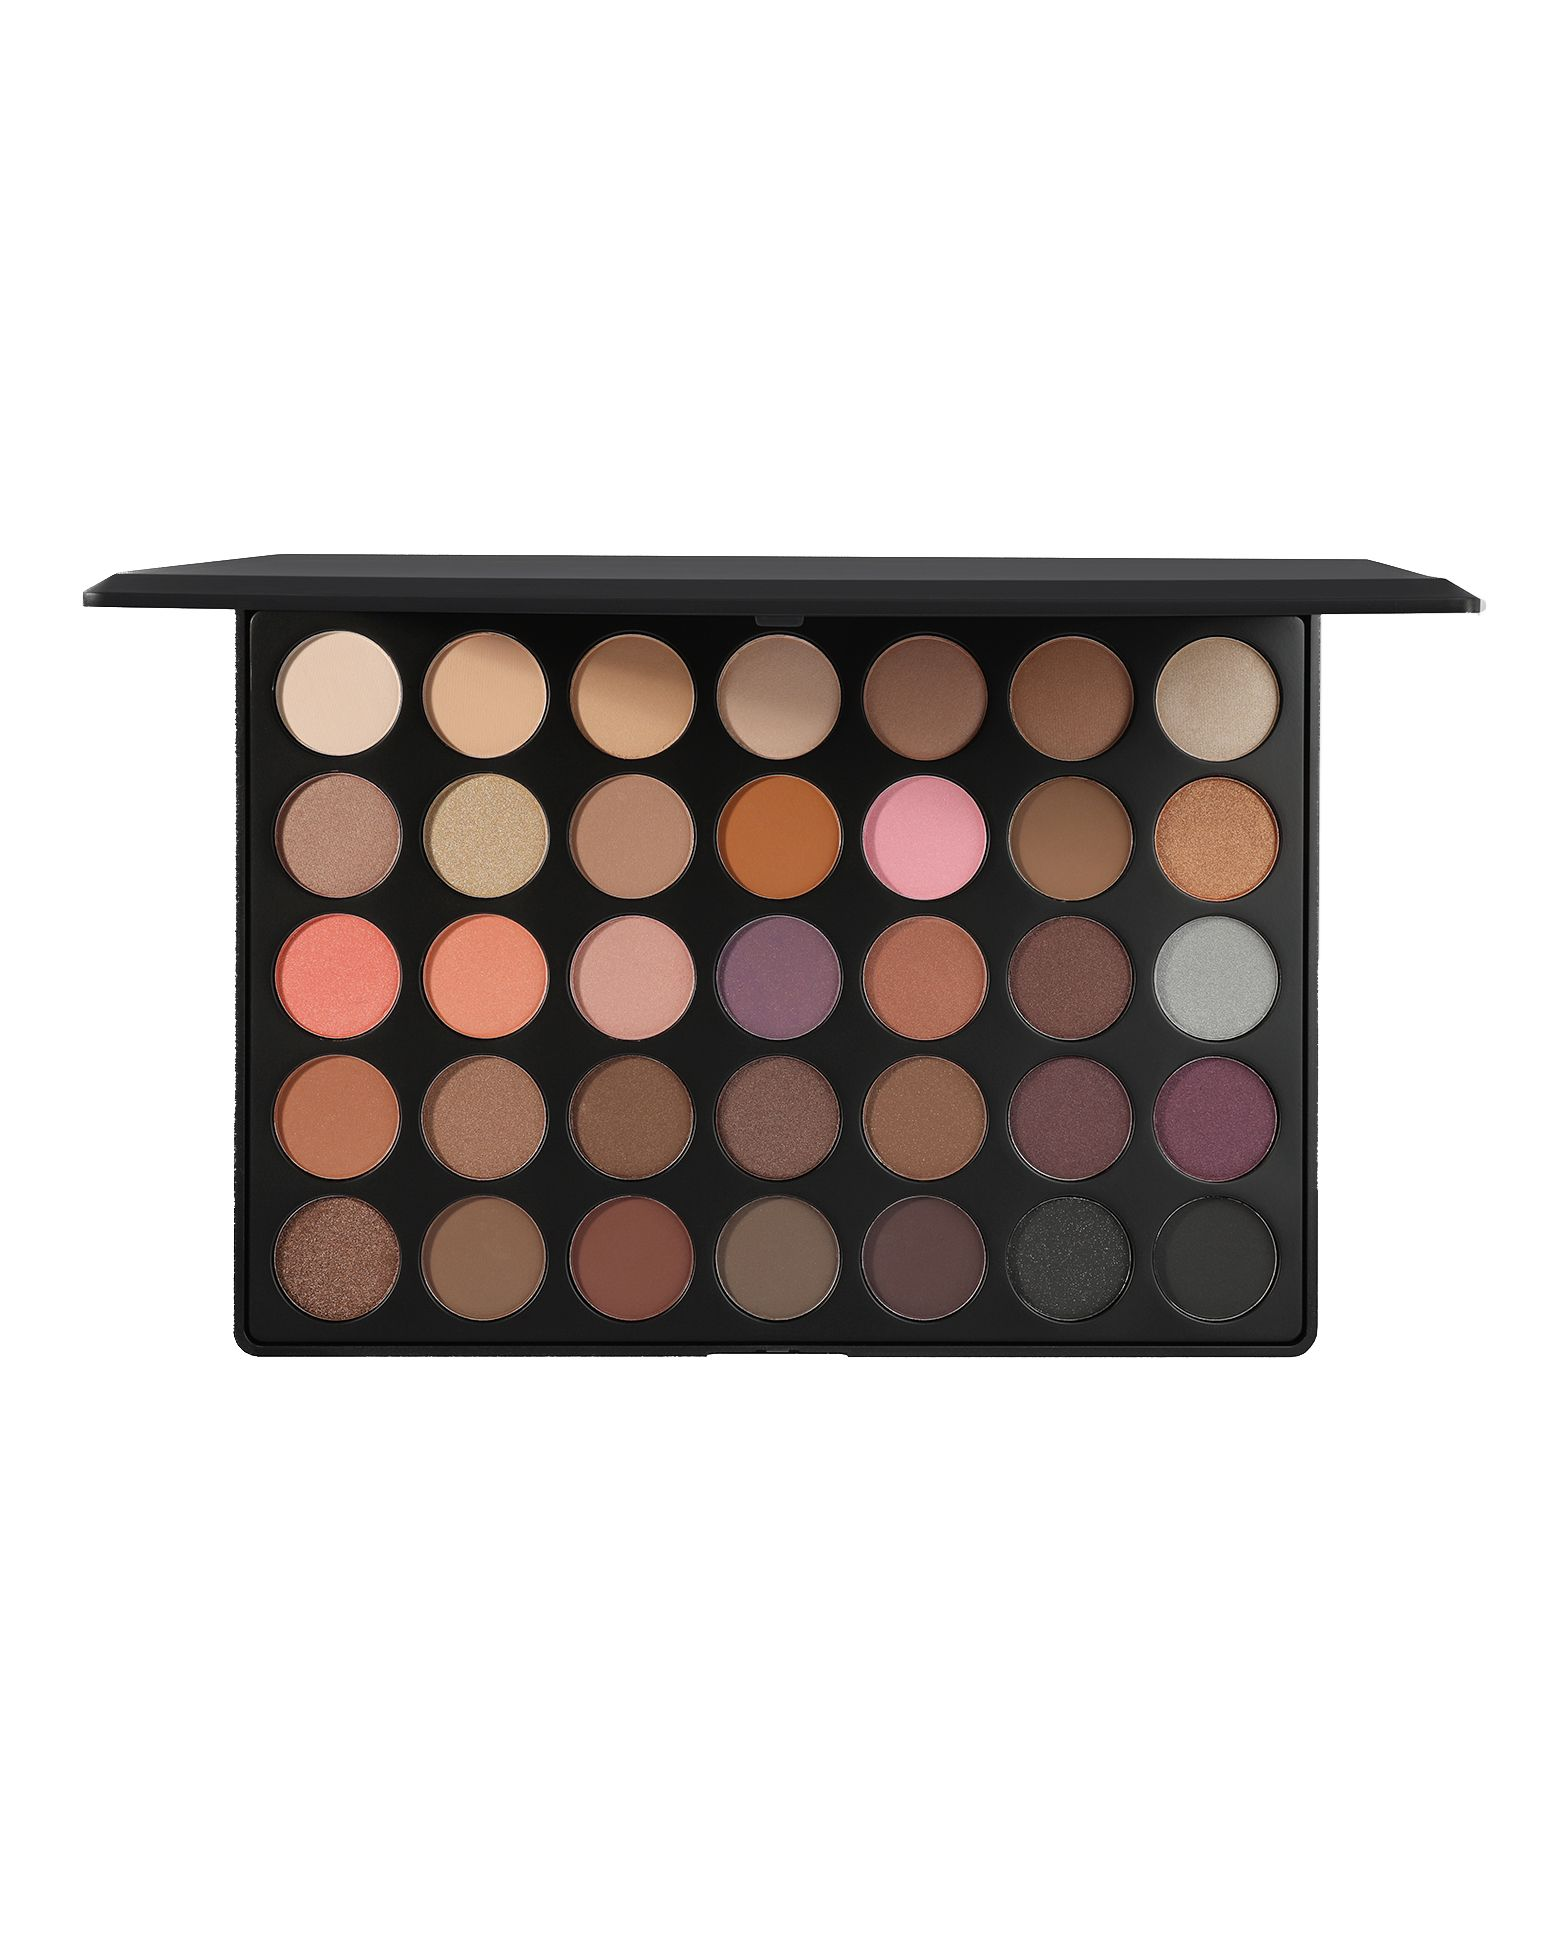 Morphe 35W Warm Eyeshadow Palette Best matte eyeshadow